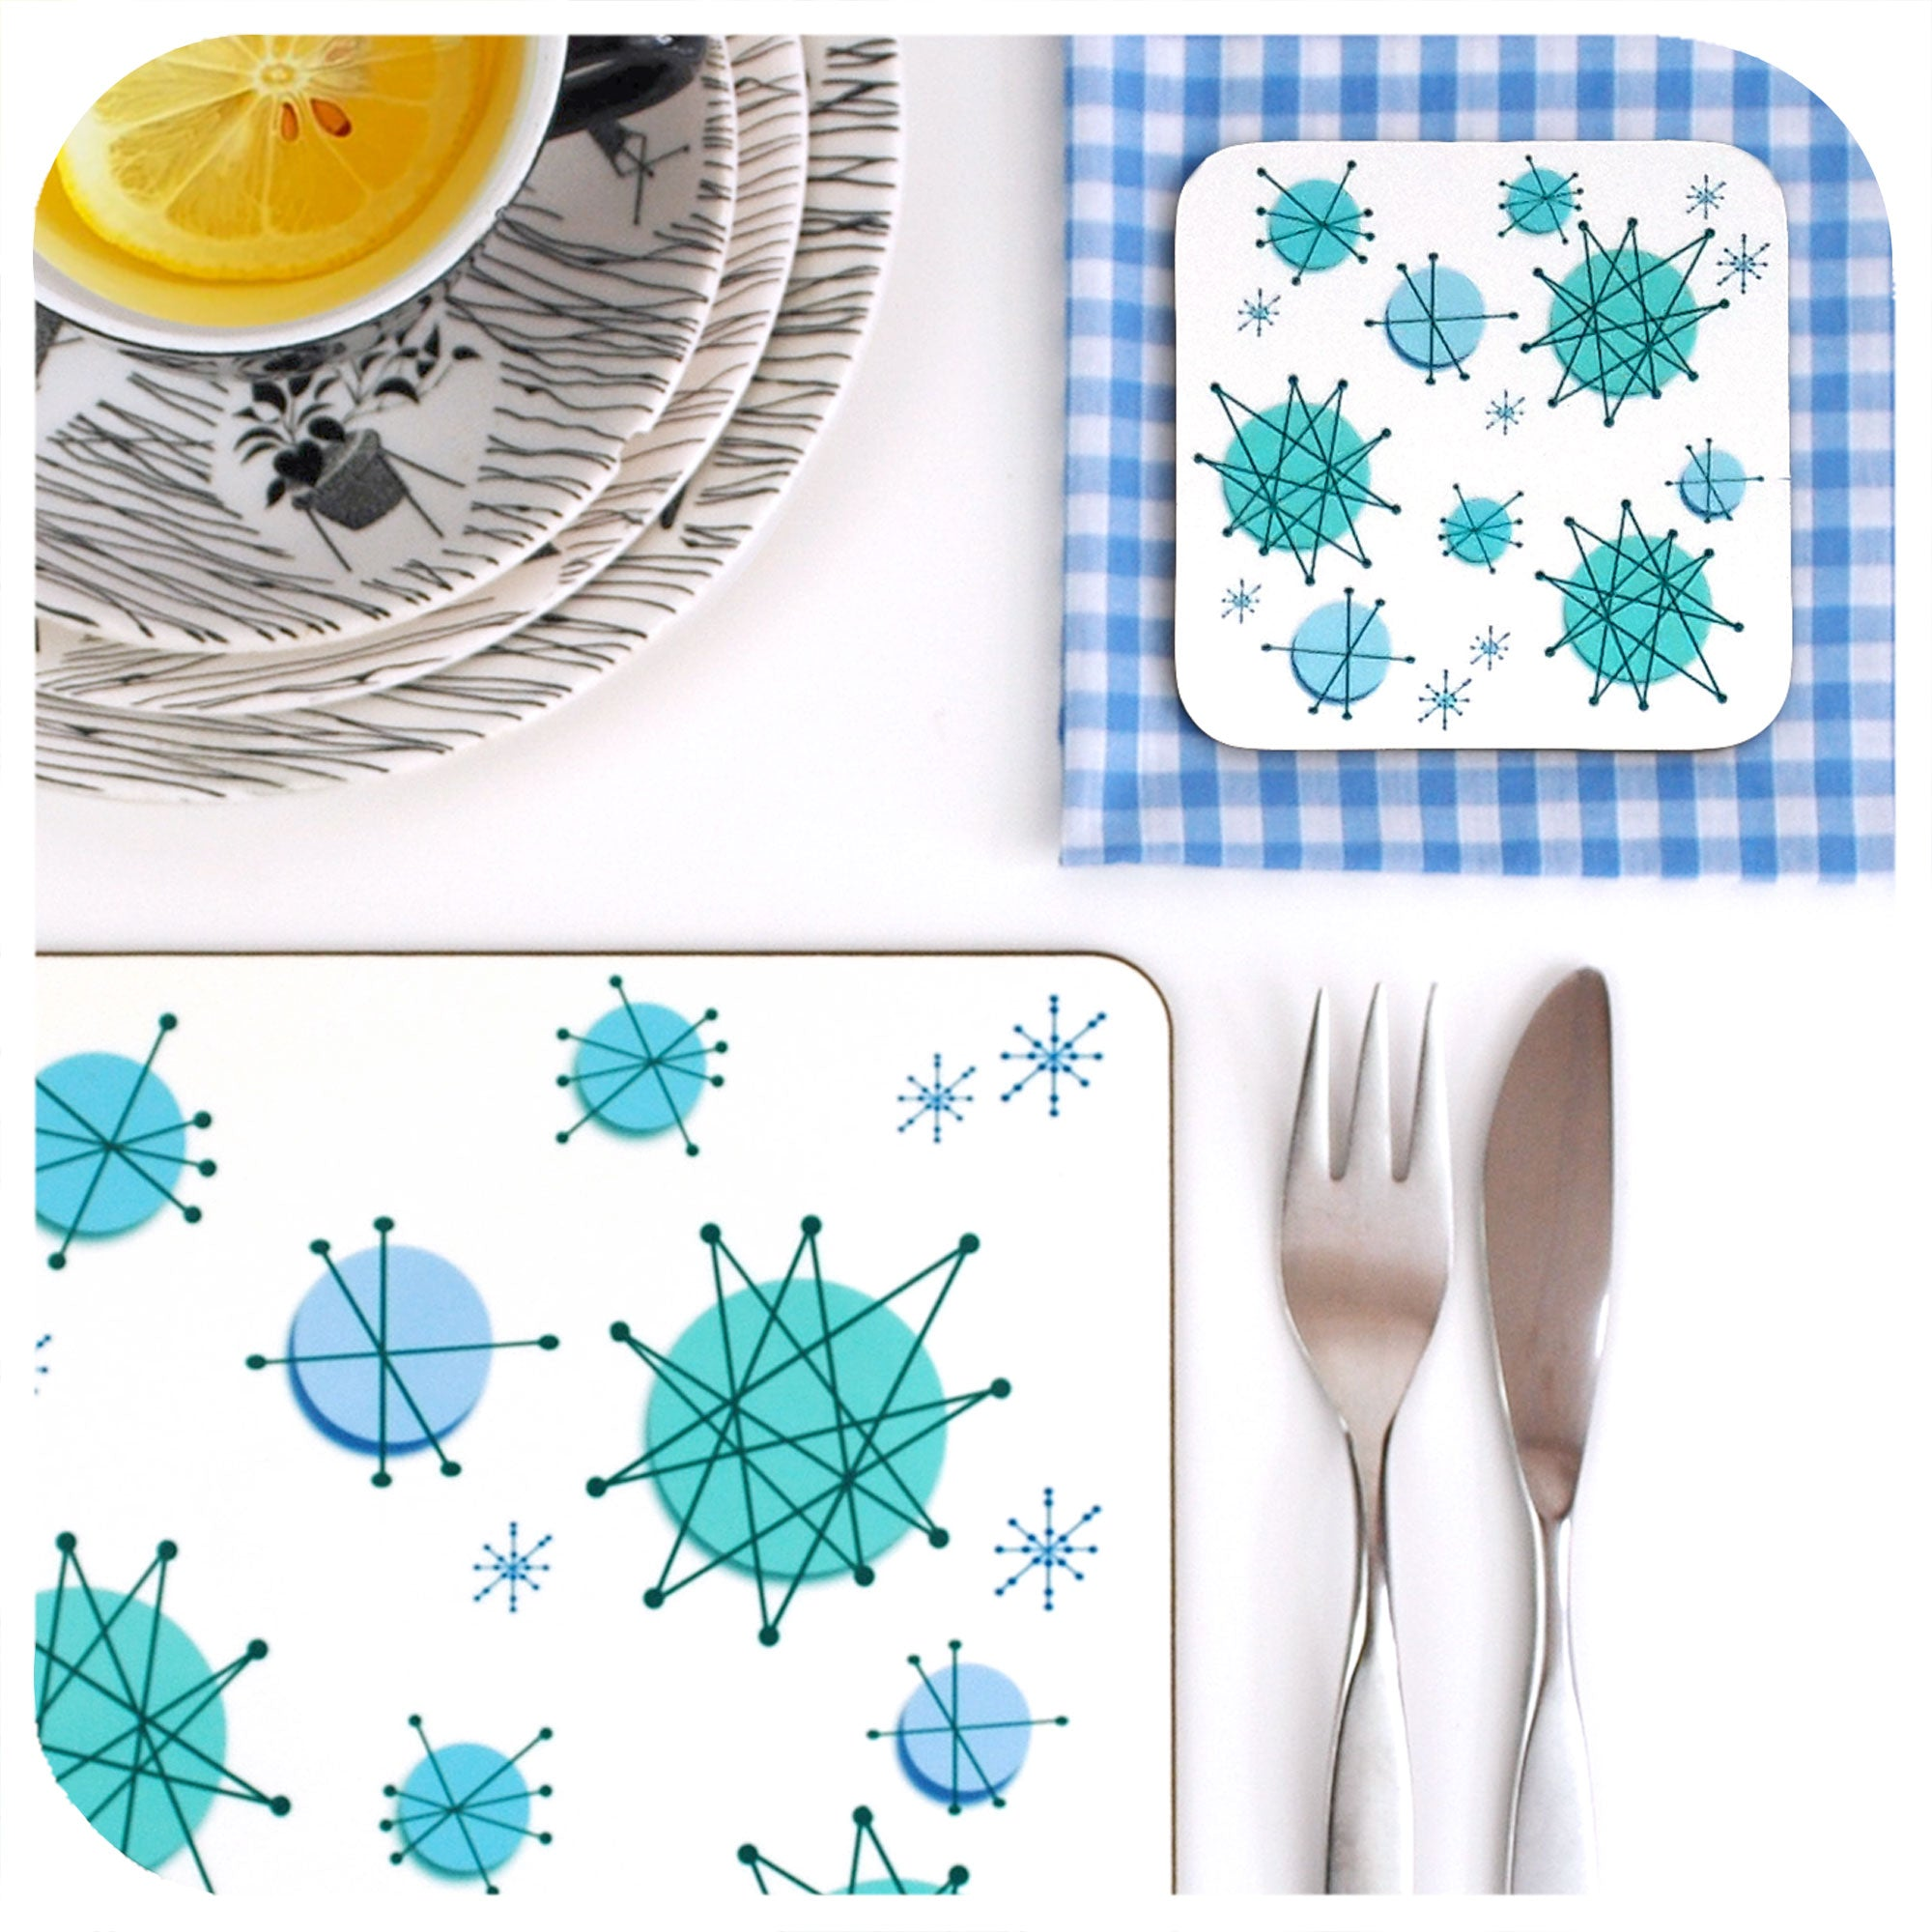 Atomic Starburst Placemat & Coaster, close up | The Inkabilly Emporium